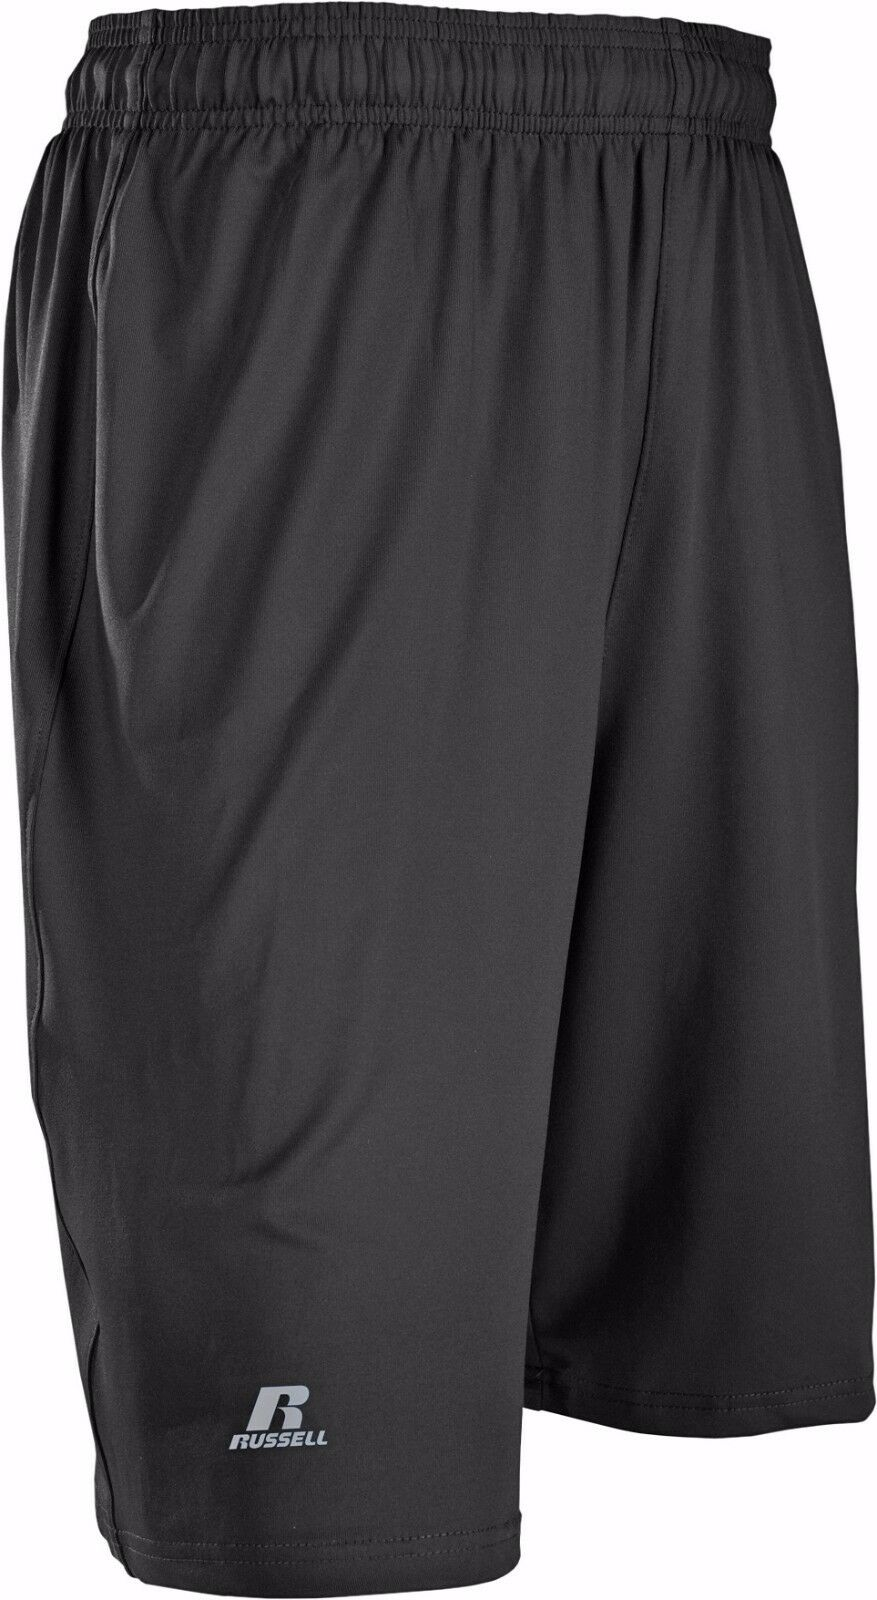 Russell Athletic Men's Stretch Performance Short, Black, Sma